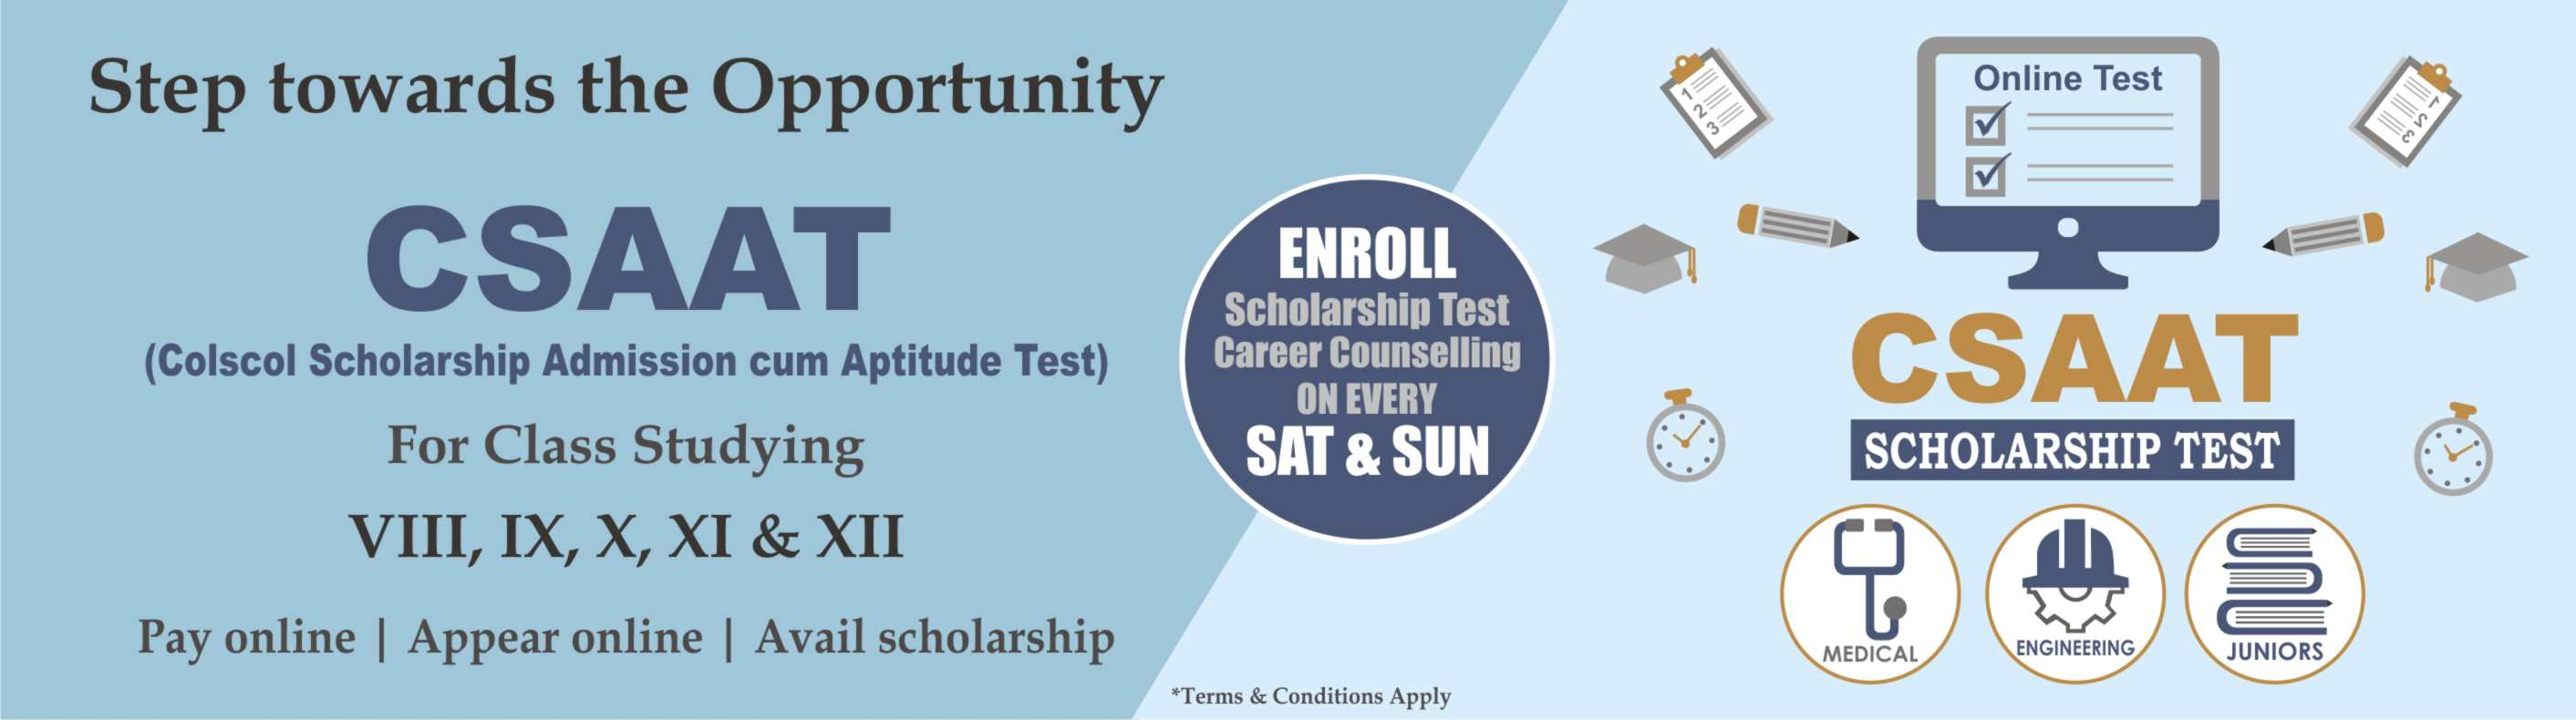 CSAAT_scholarship_coaching_colscol